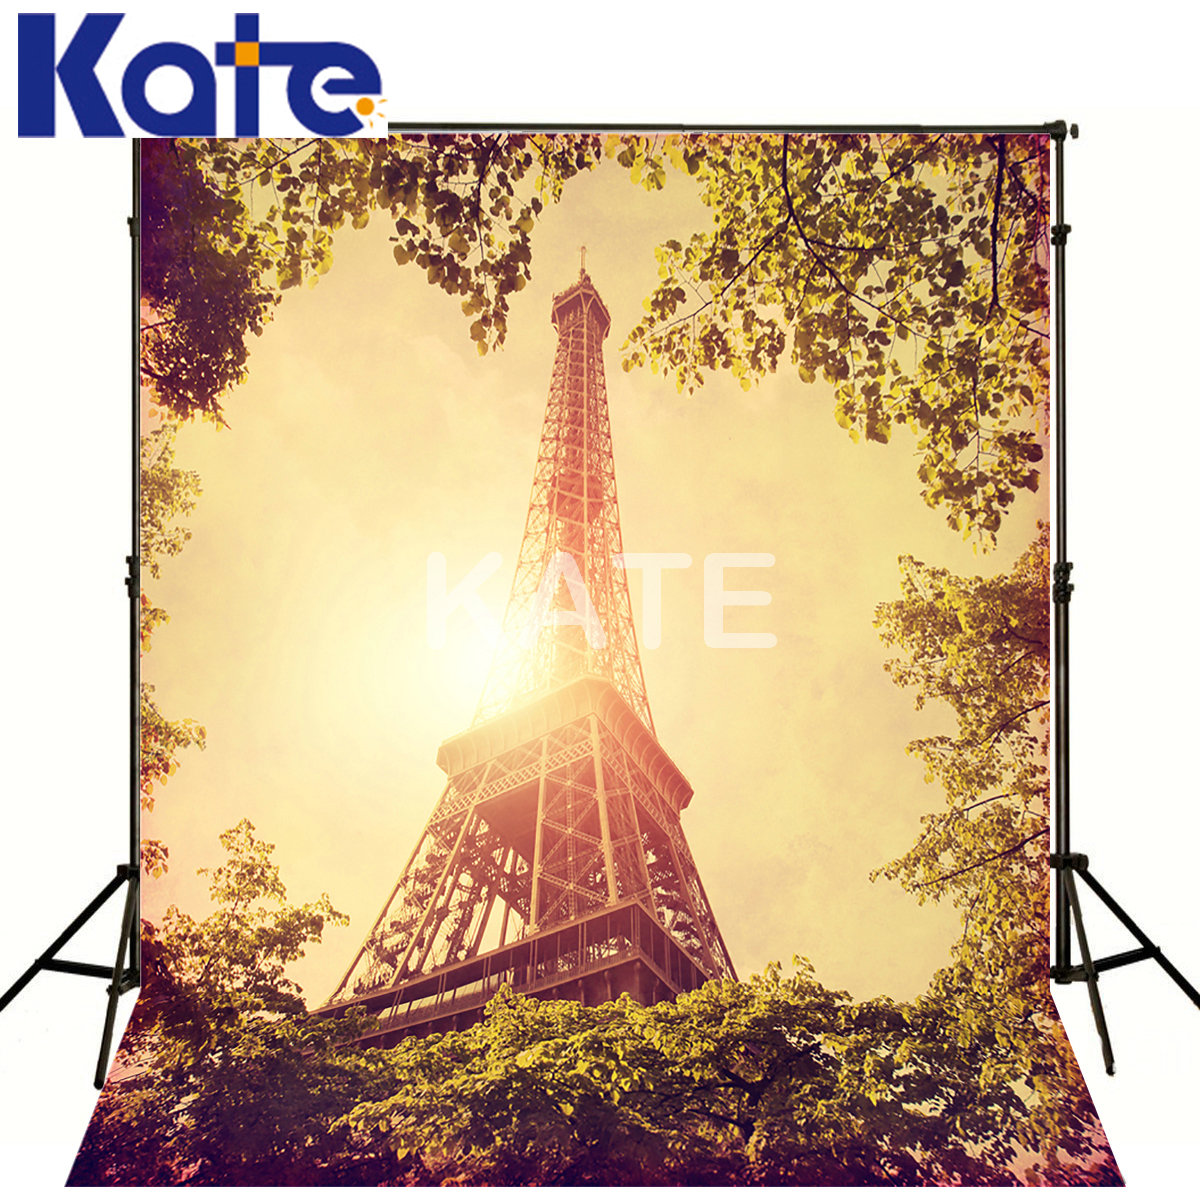 Kate Backgrounds For Photo Studio Dream Eiffel Tower For Wedding Background Backdrop Sunshine Wedding Background Photo kate photo background scenery